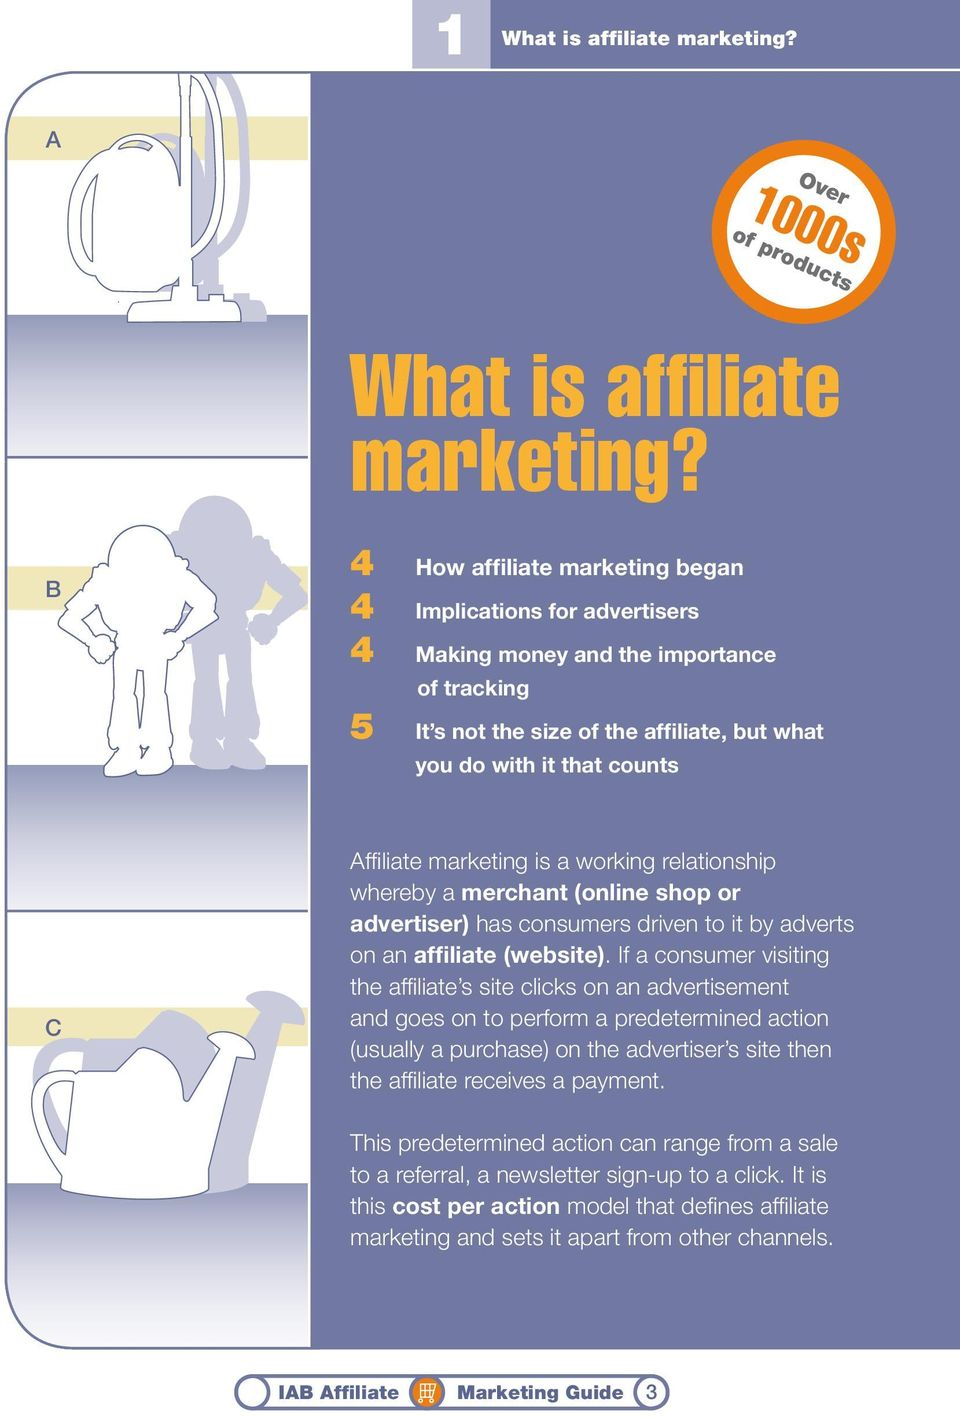 marketing is a working relationship whereby a merchant (online shop or advertiser) has consumers driven to it by adverts on an affiliate (website).